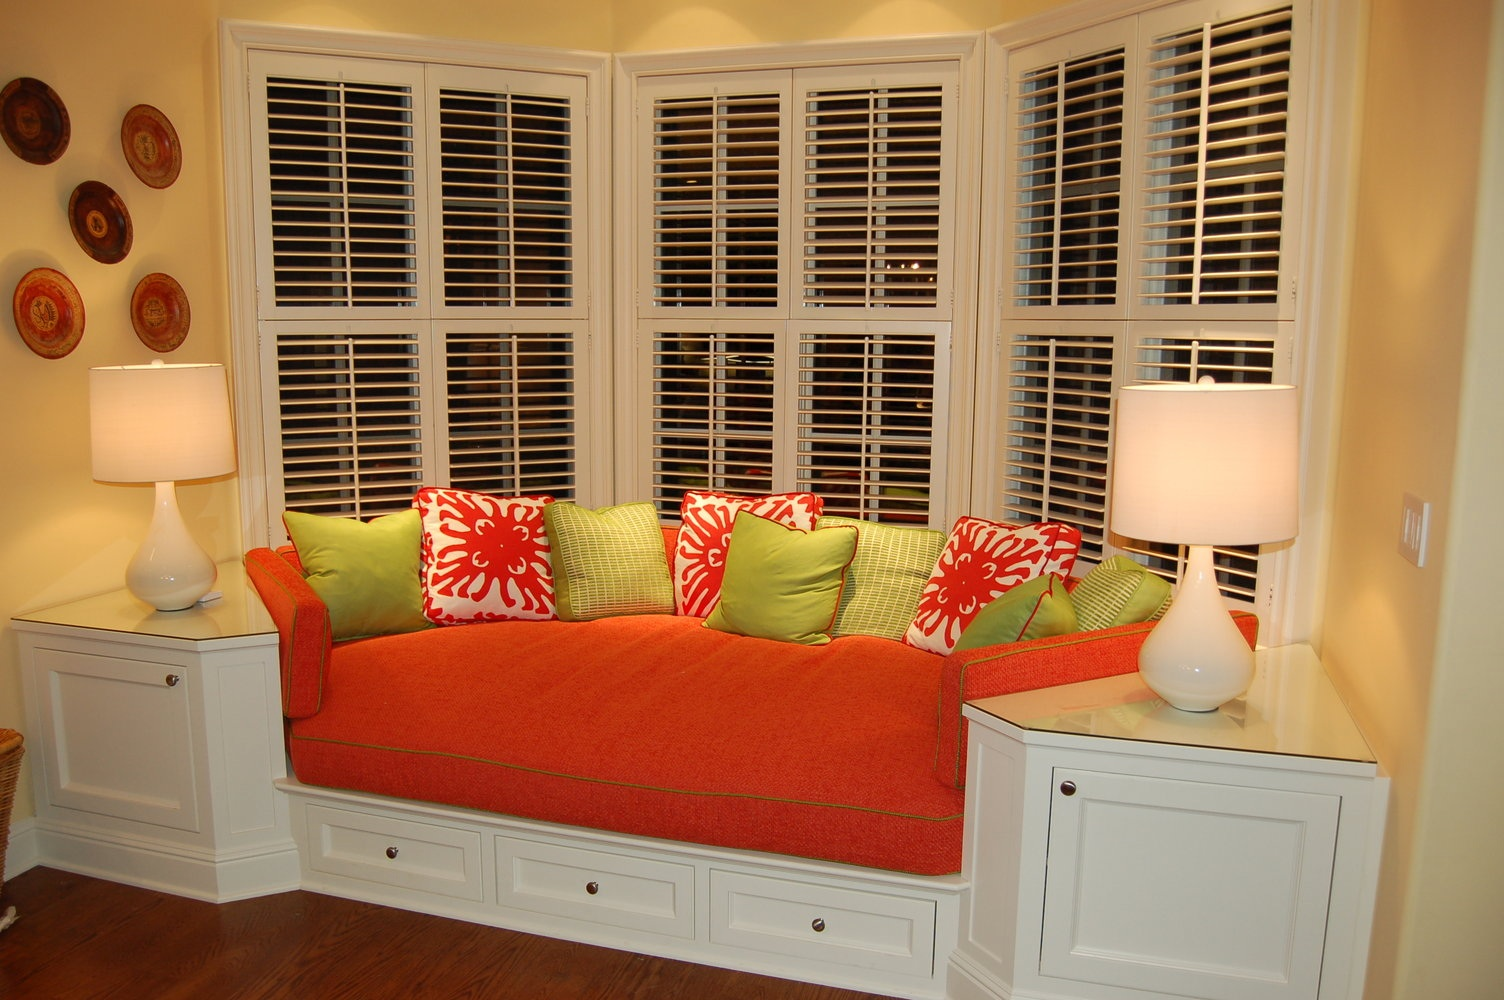 Comfortable Window Seats with Storage - HomesFeed